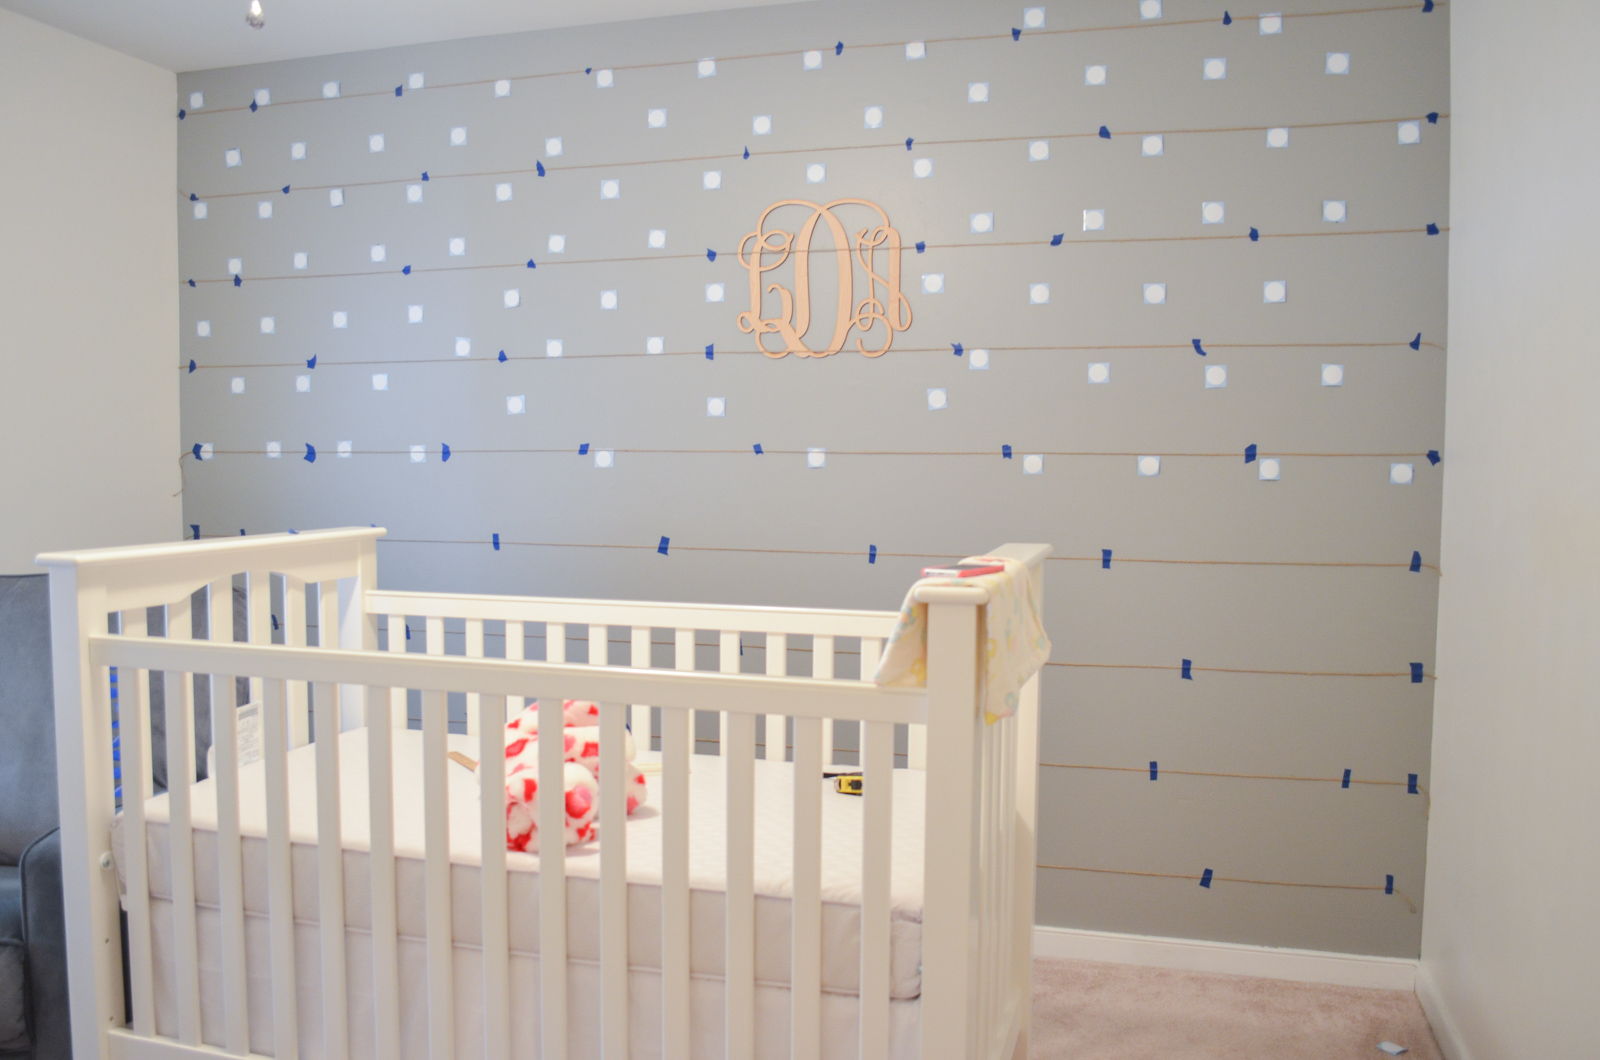 Simple diy polka dot wall easy instructions for polka dot wall bylaurenm